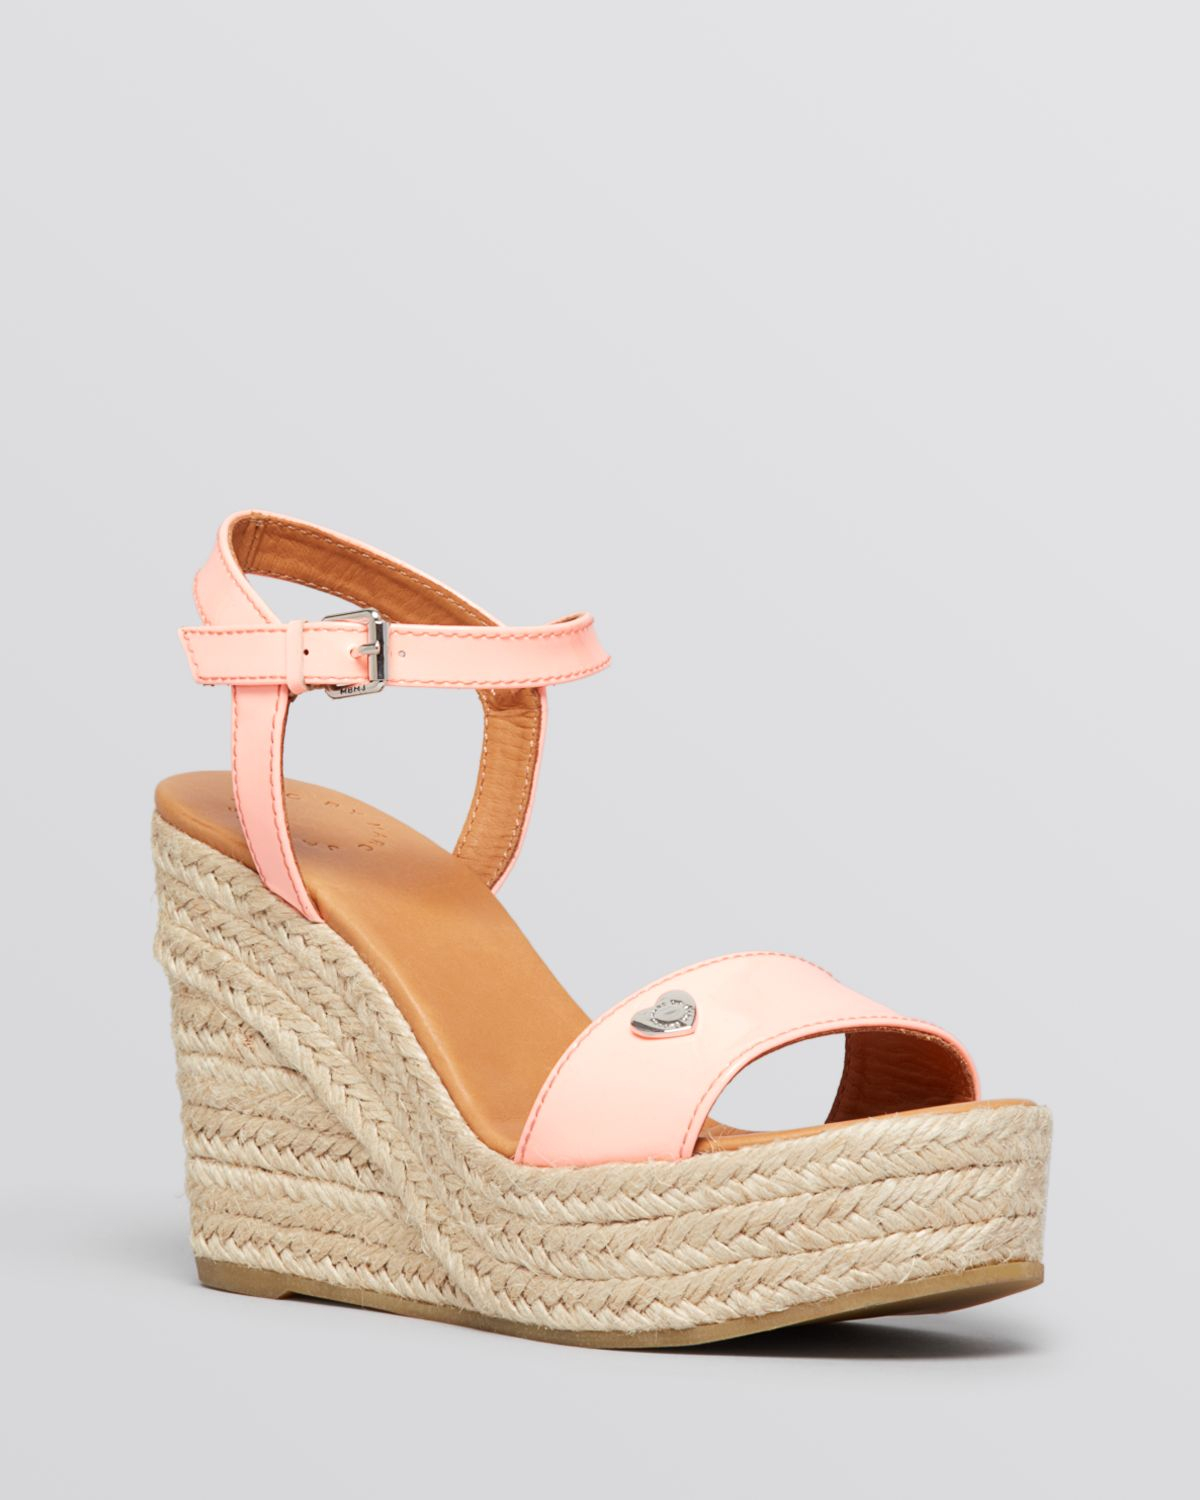 Marc Jacobs Platform Wedge Sandals sale under $60 discount cheap clearance official cheap really marketable cheap online CJ7pccs4yK